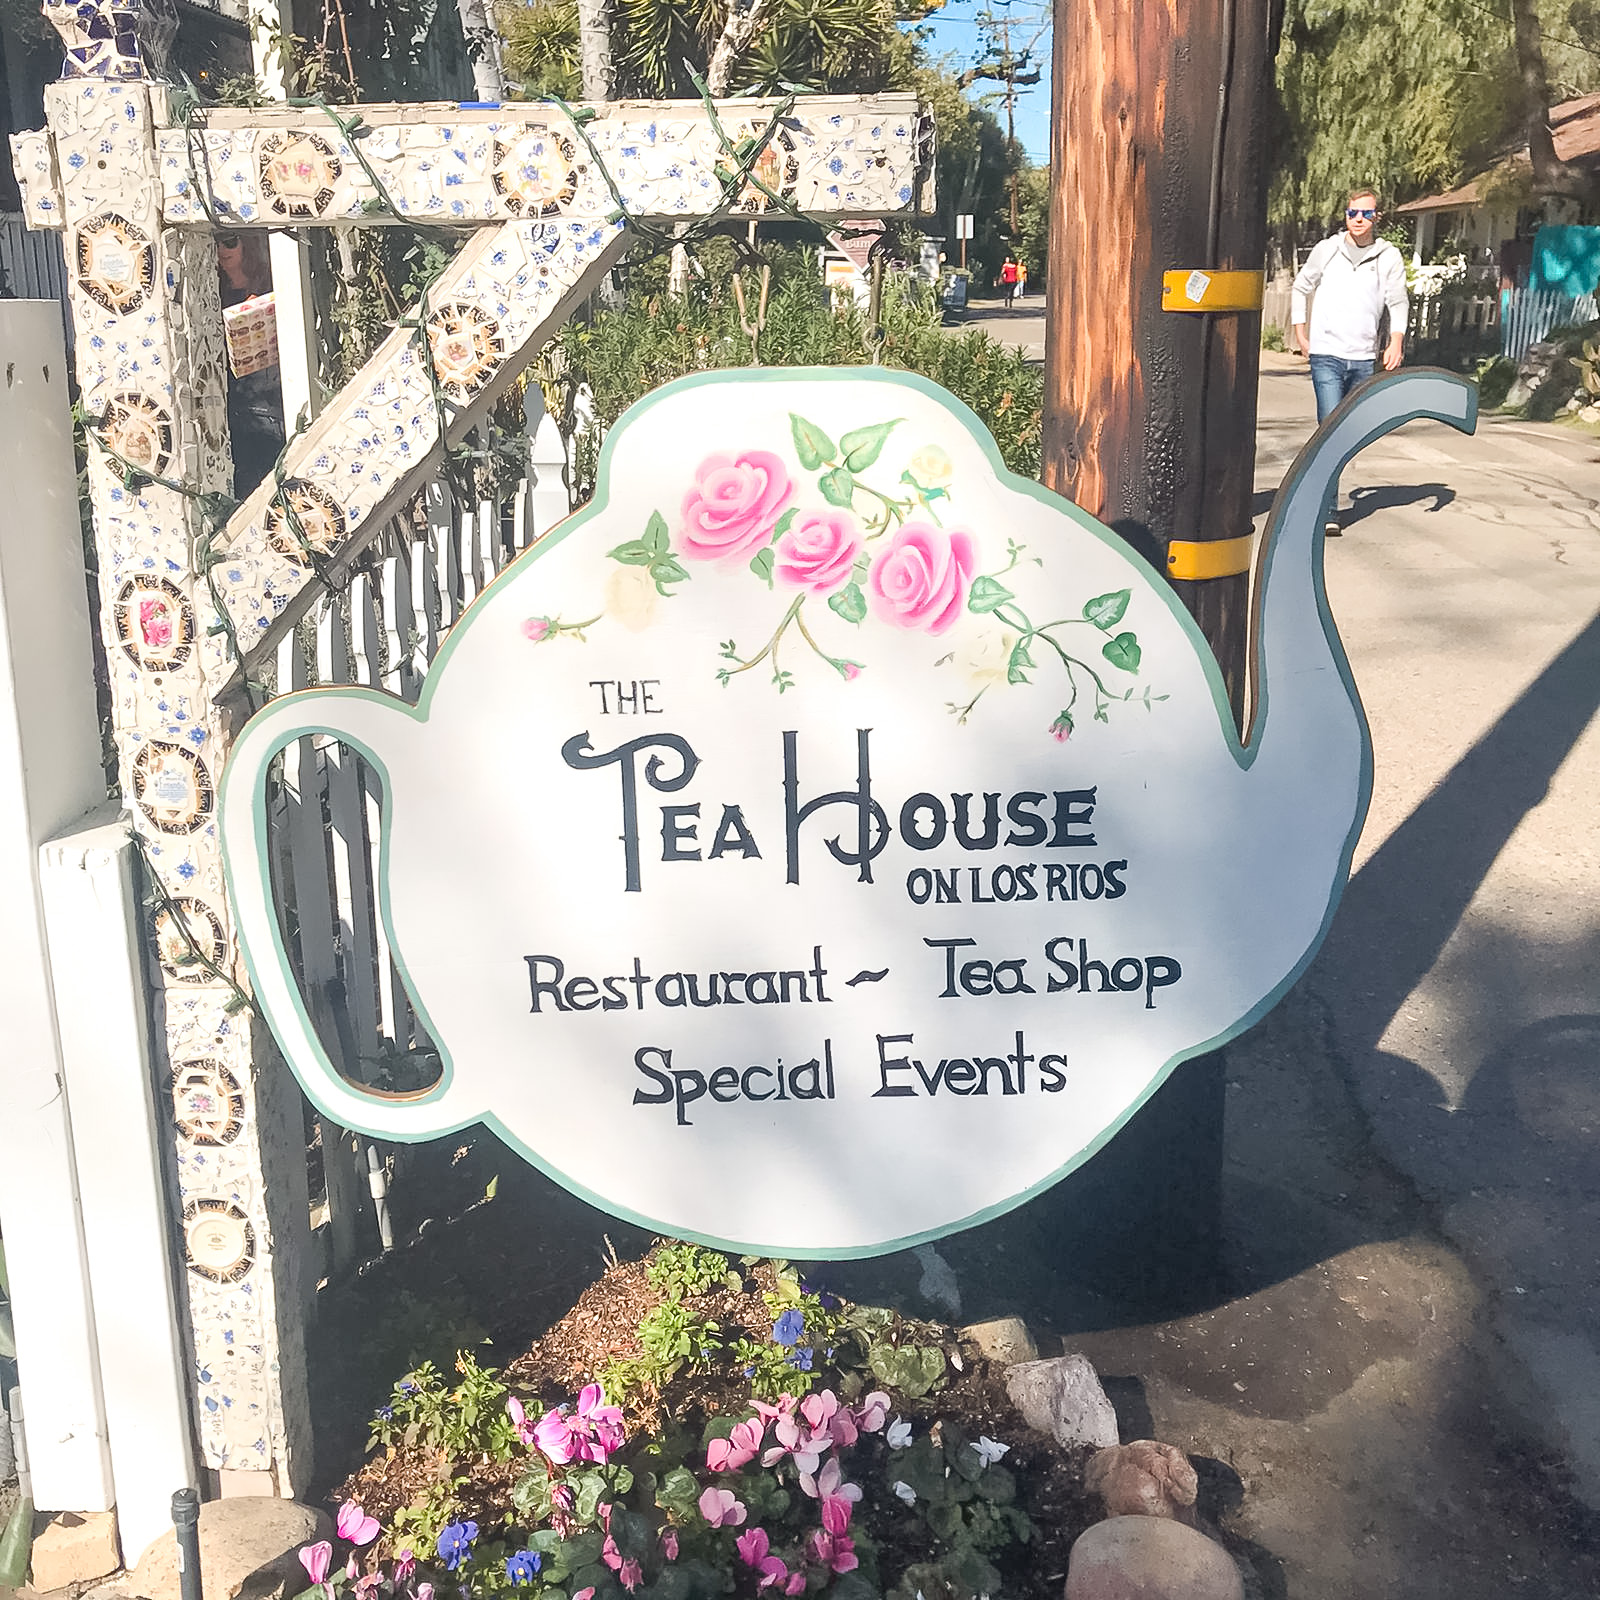 Tea House on Los Rios